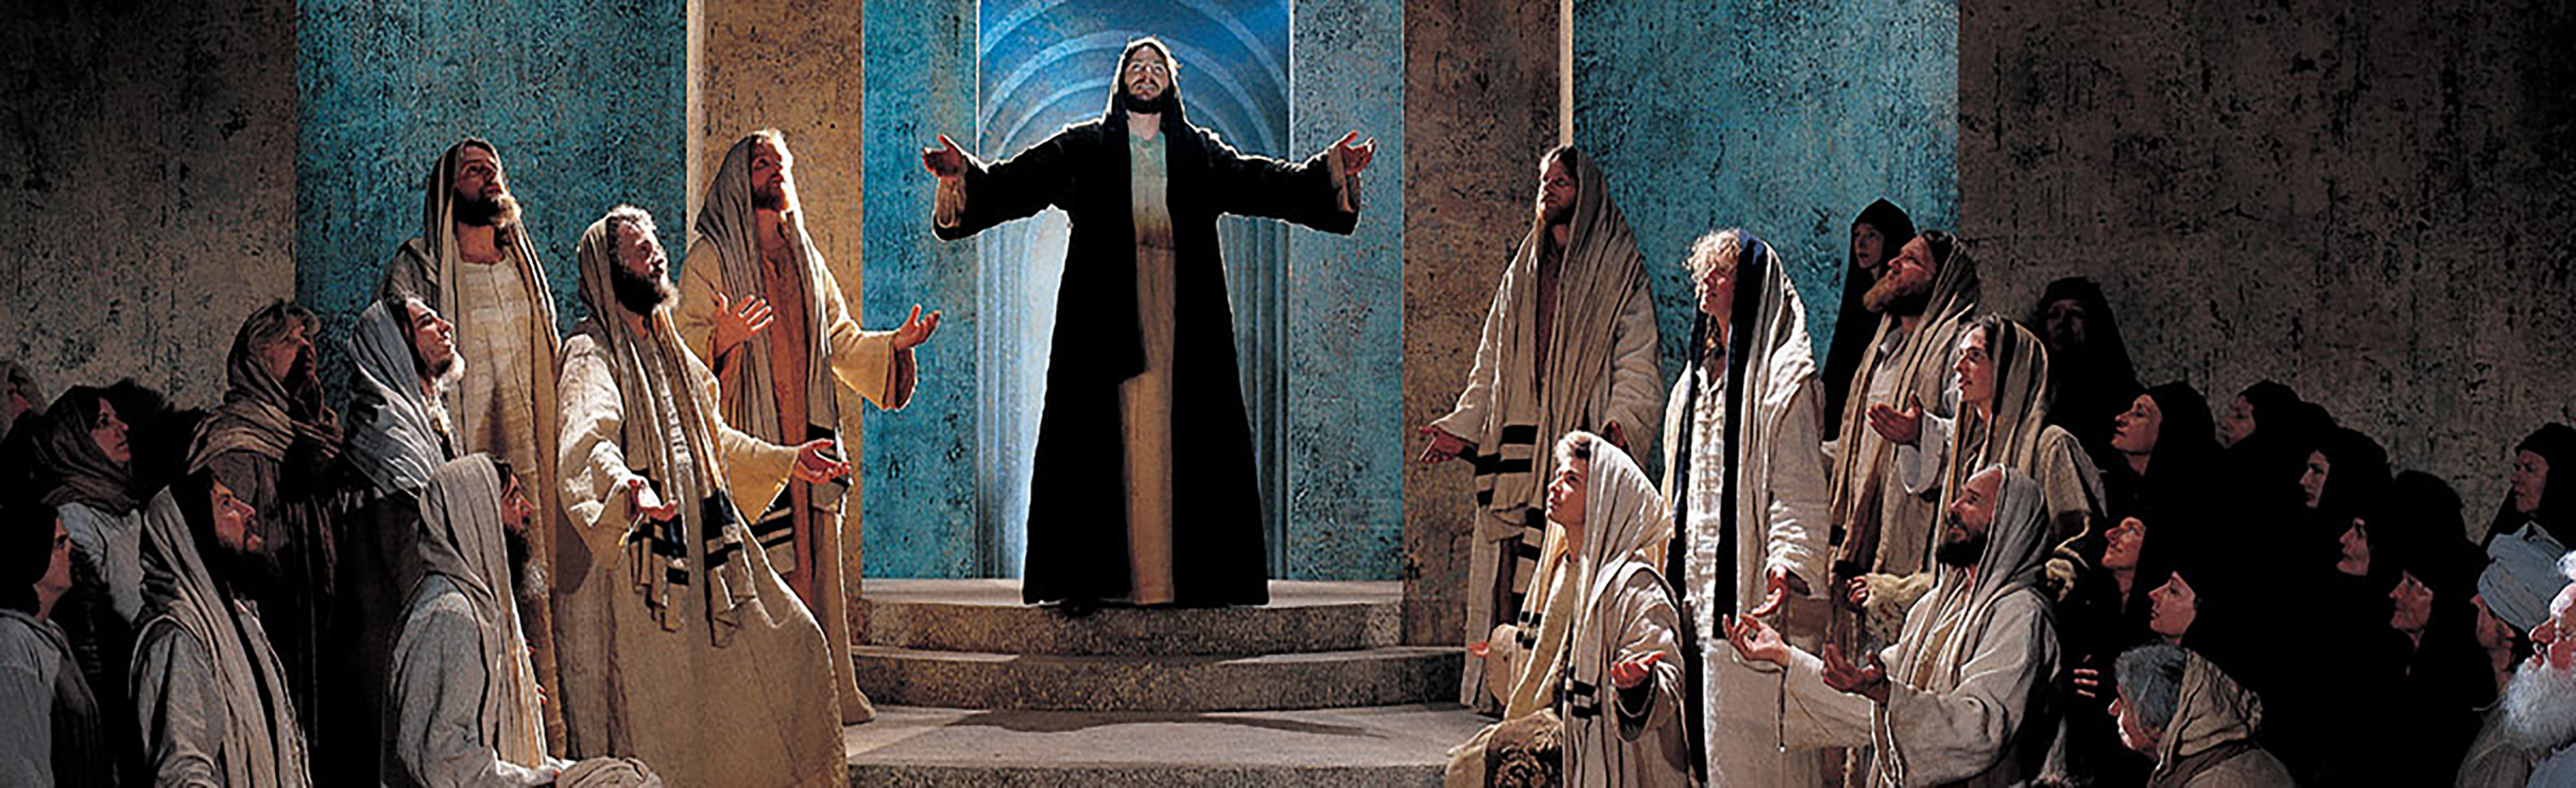 A theatrical reenactment of the passion of Christ as portrayed by talented actors.